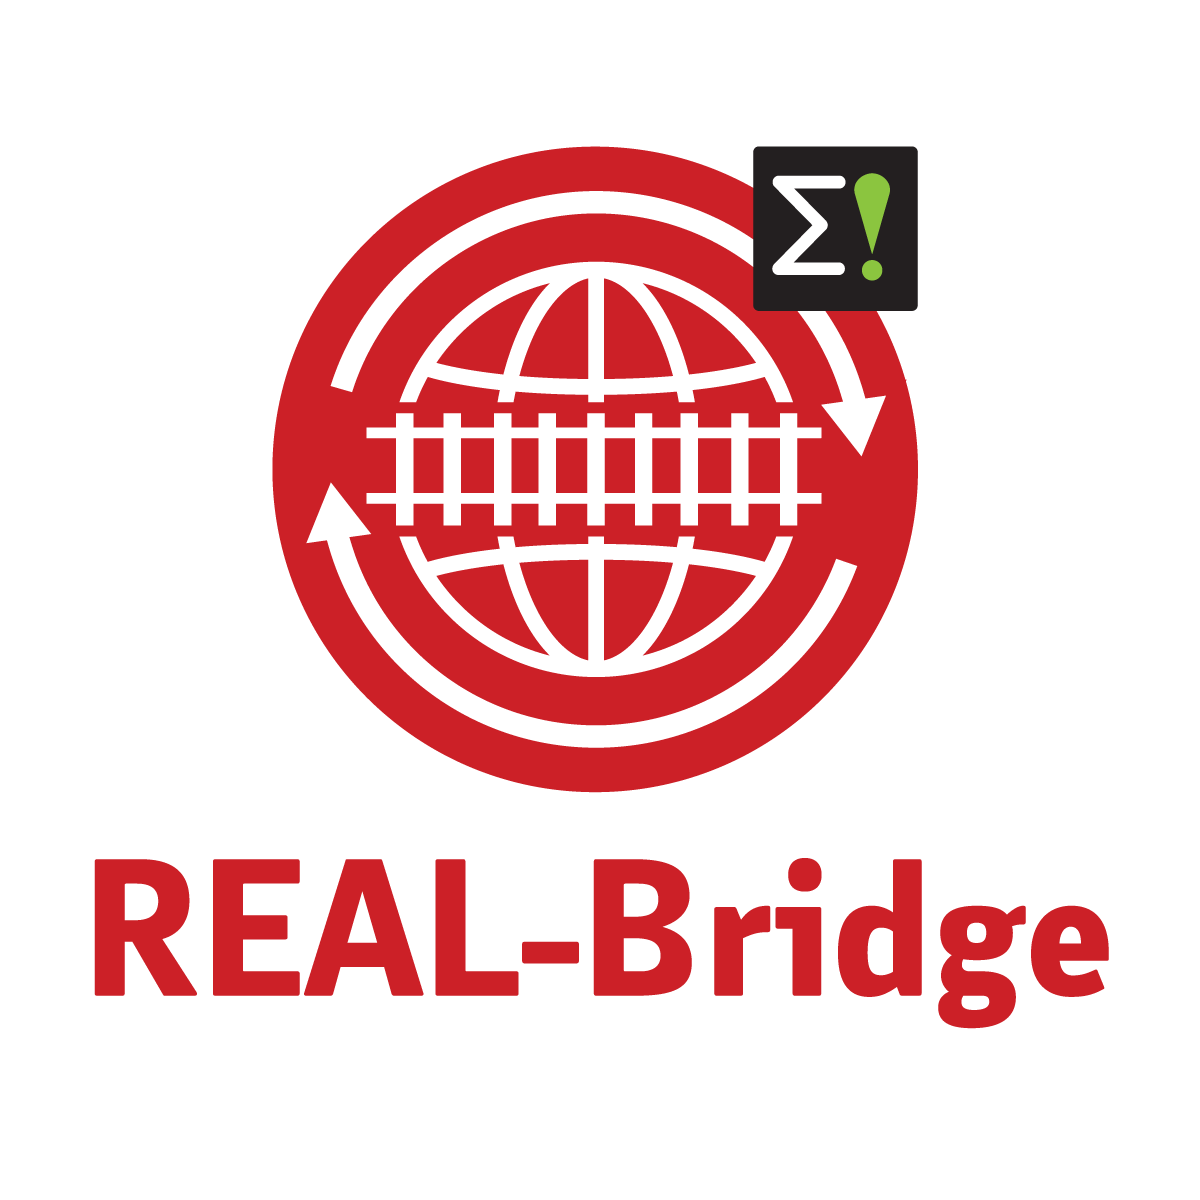 REAL-BRIDGE